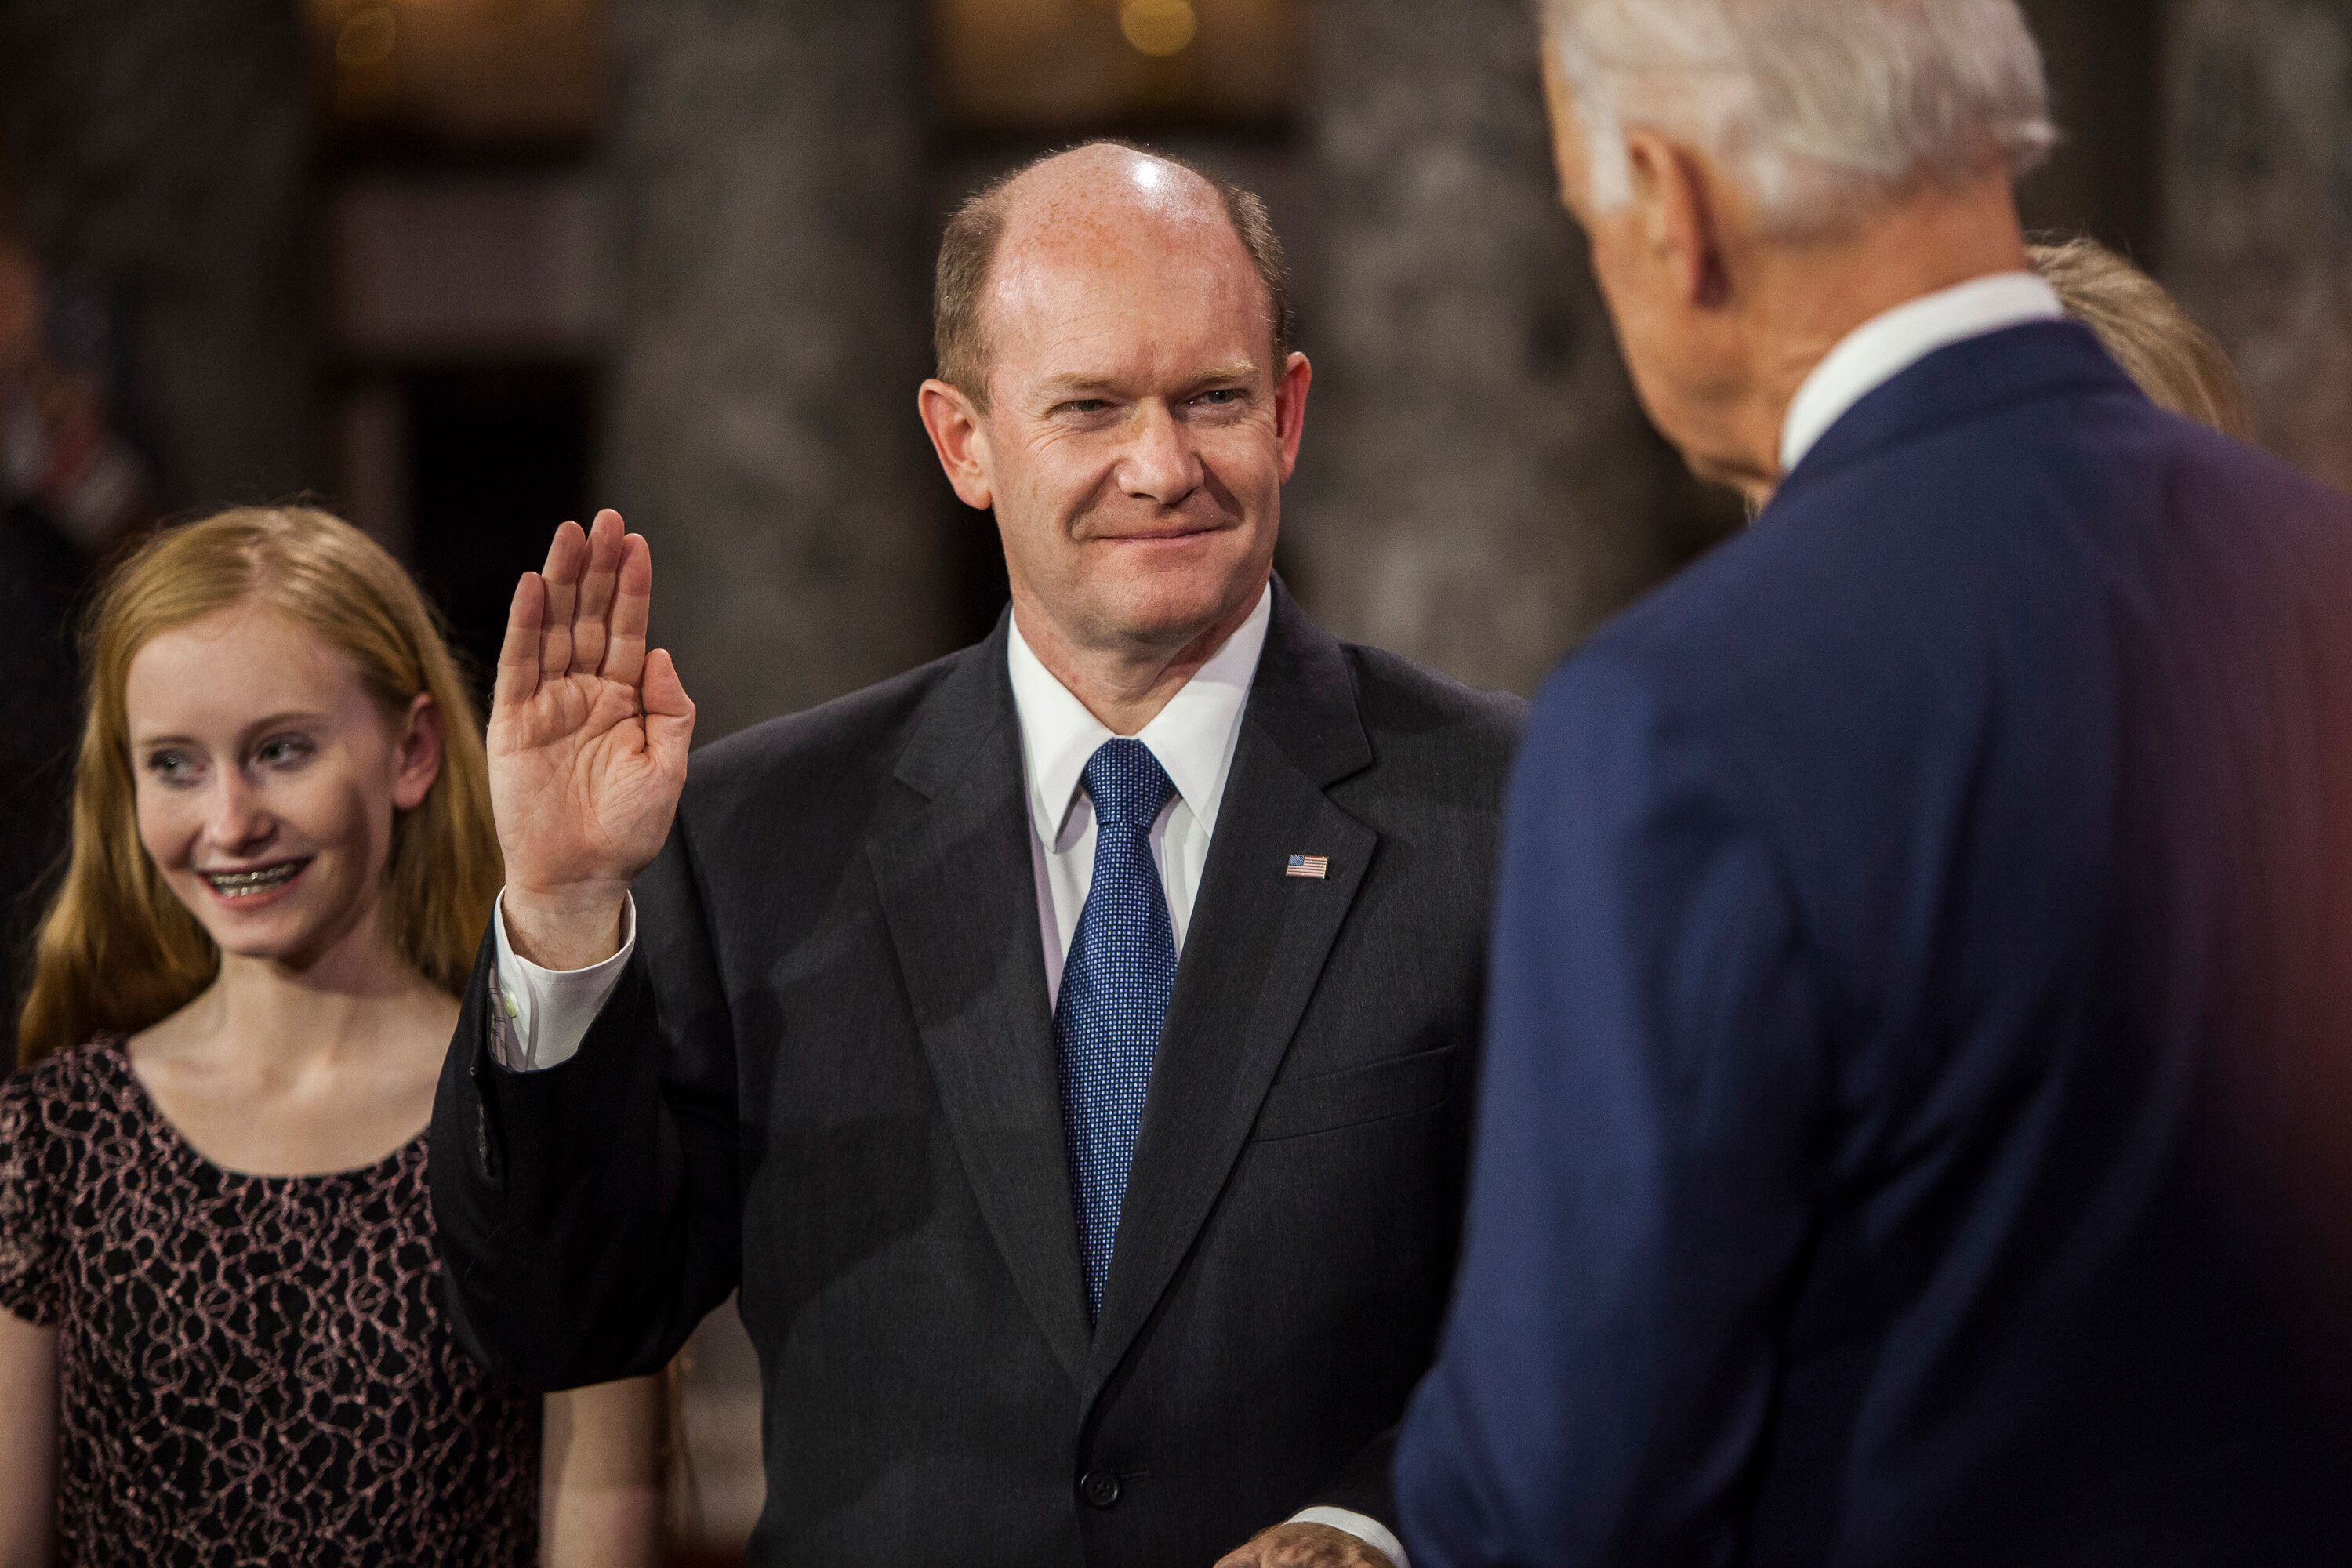 Sen. Chris Coons (D-Del.), a friend of President Joe Biden, is both a top recipient of pharmaceutical industry cash and a str